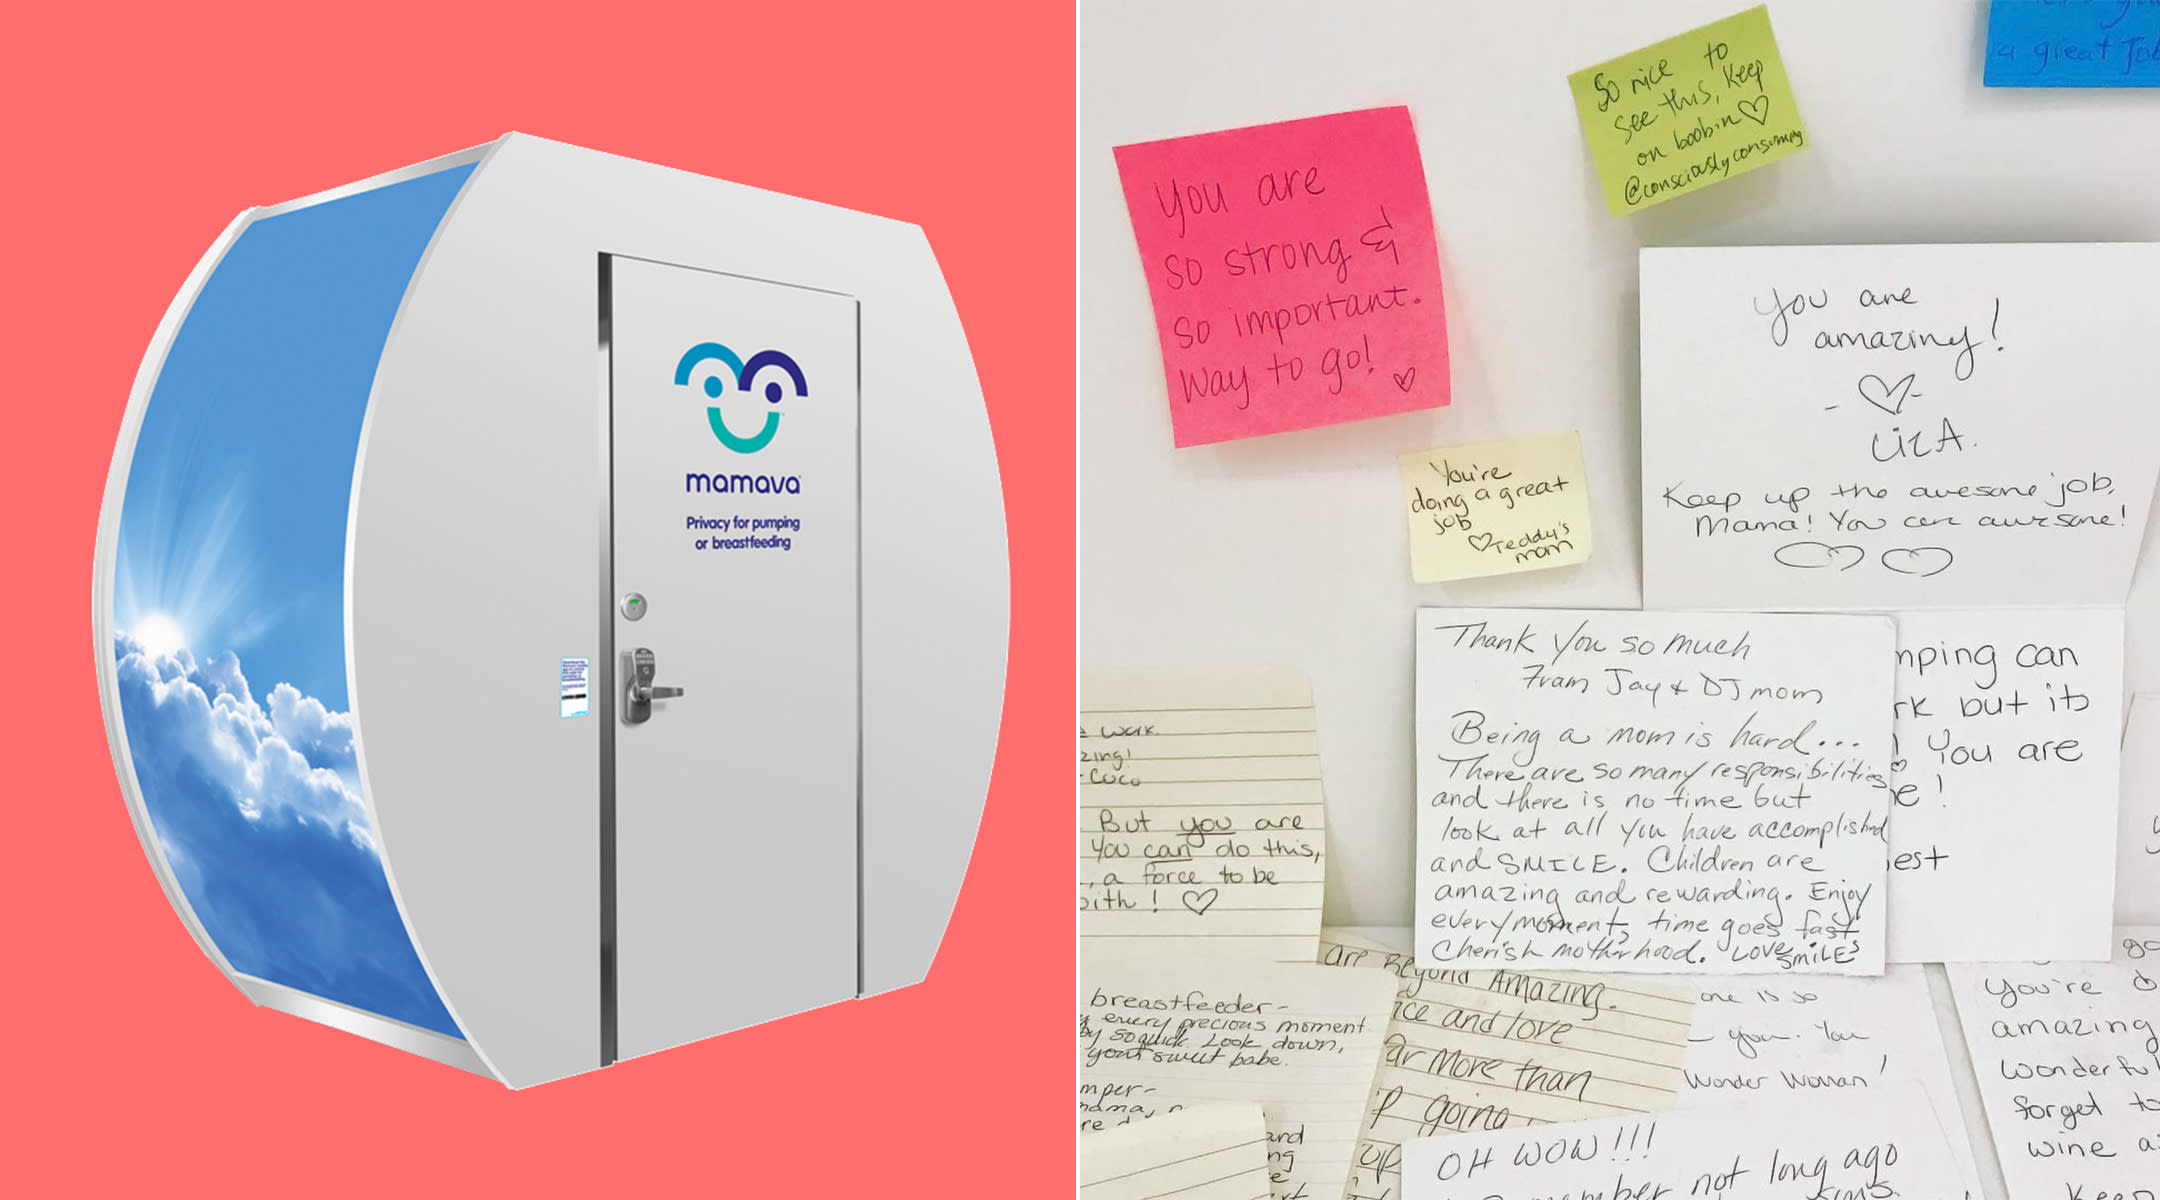 mamava breastfeeding room, moms have started leaving encouraging notes to each other